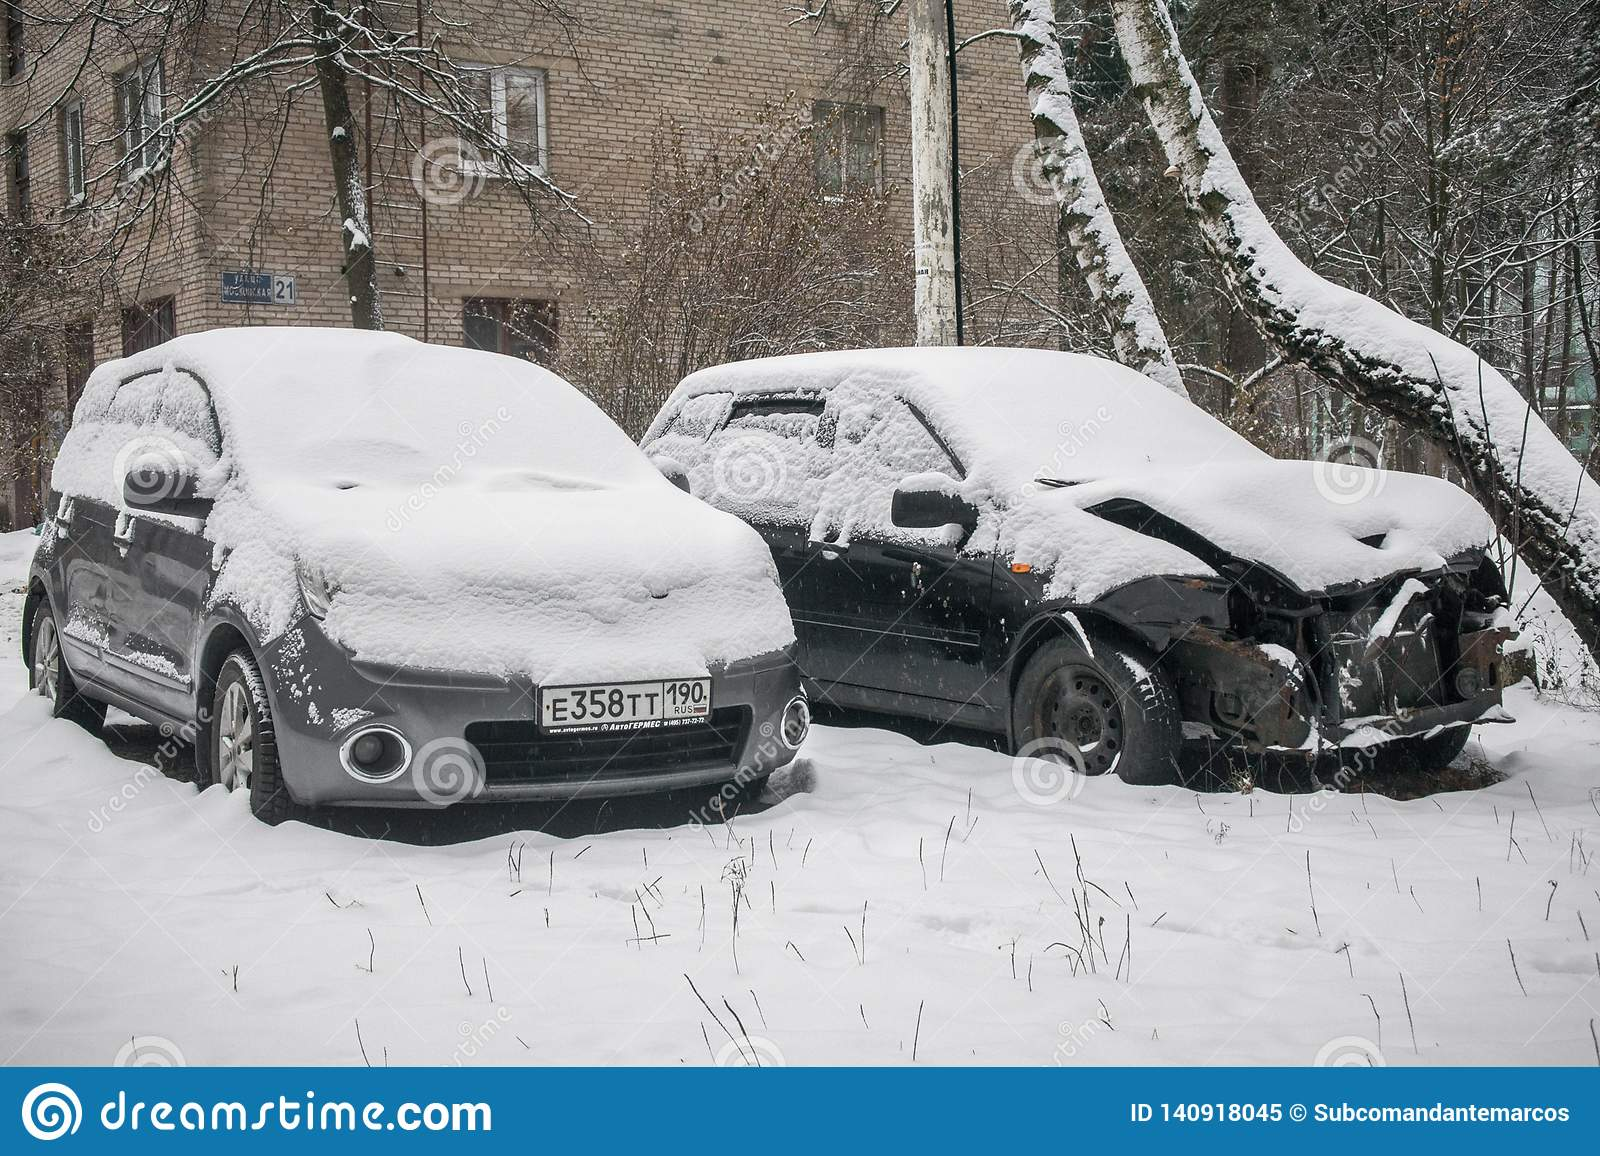 The cars, covered with thick layer of snow, in the yard of residential house in provilcial town.